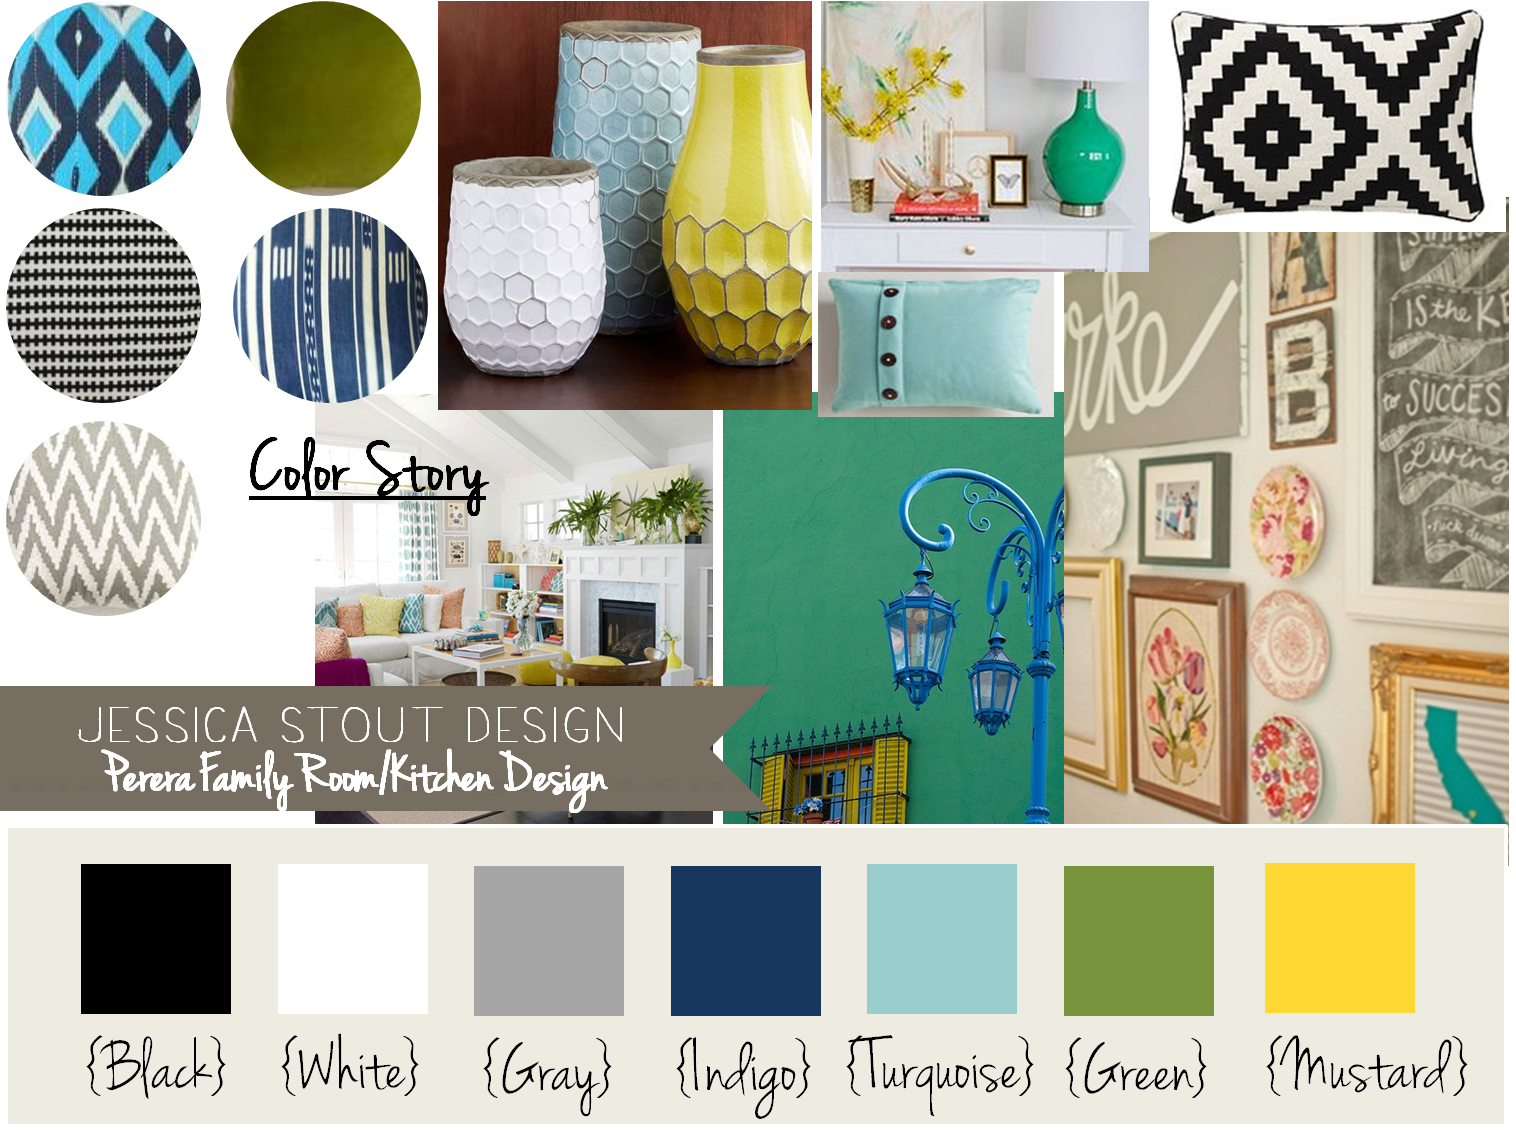 I Like The Navy Turquoise Yellow Gray And Green Happy Color Palate